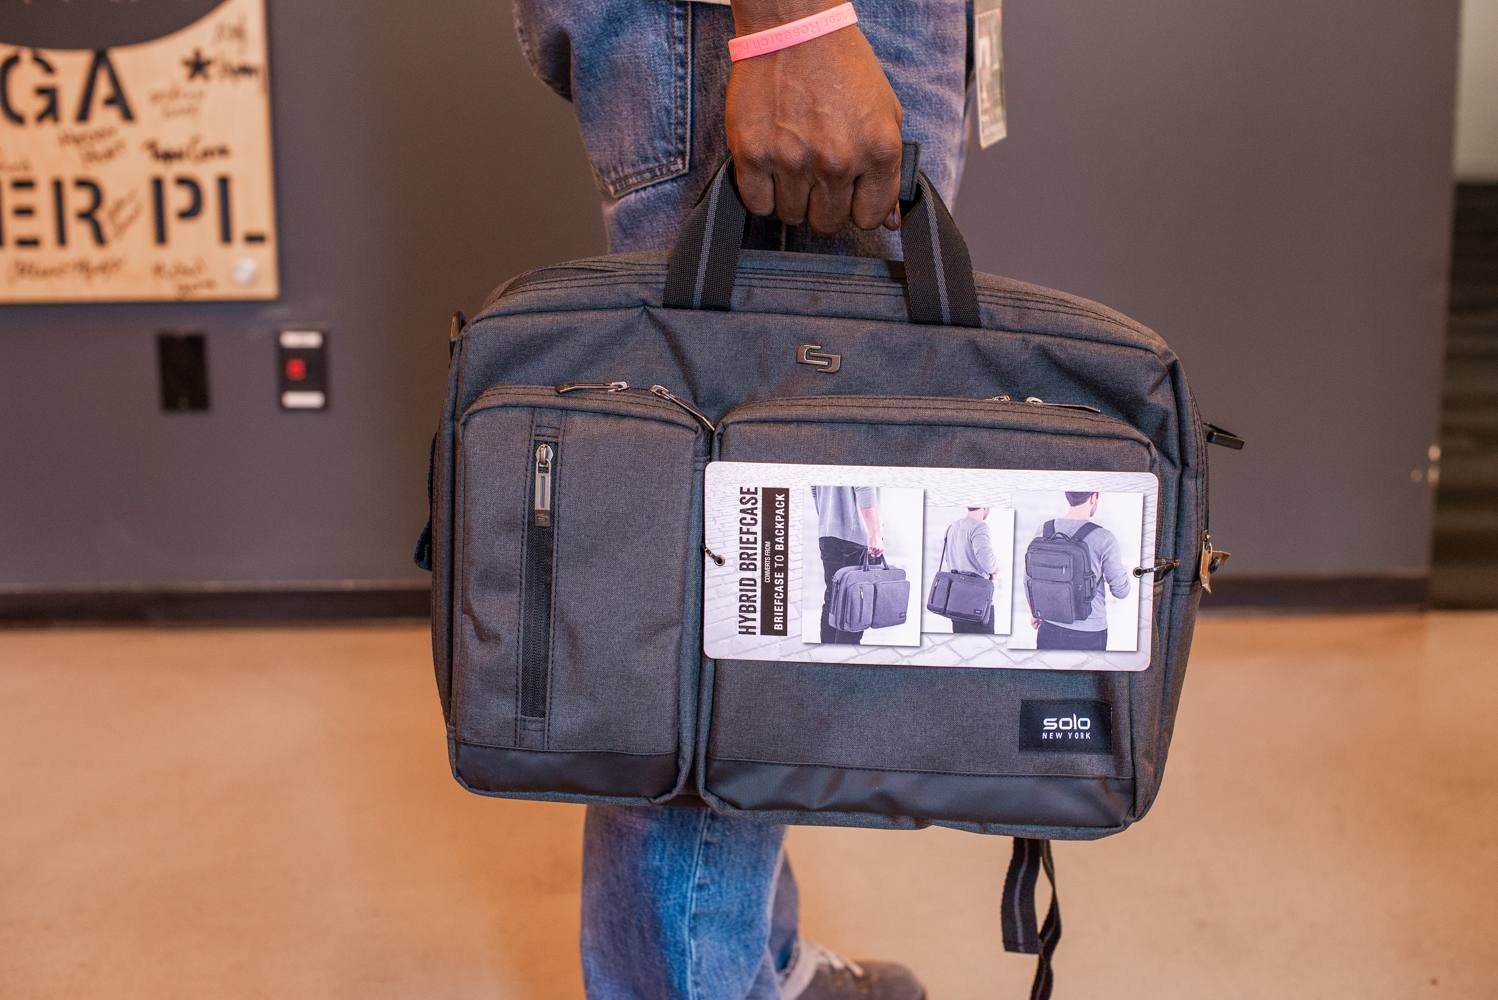 Solo Duane Hybrid Briefcase Backpack Review Simple Yet Functional